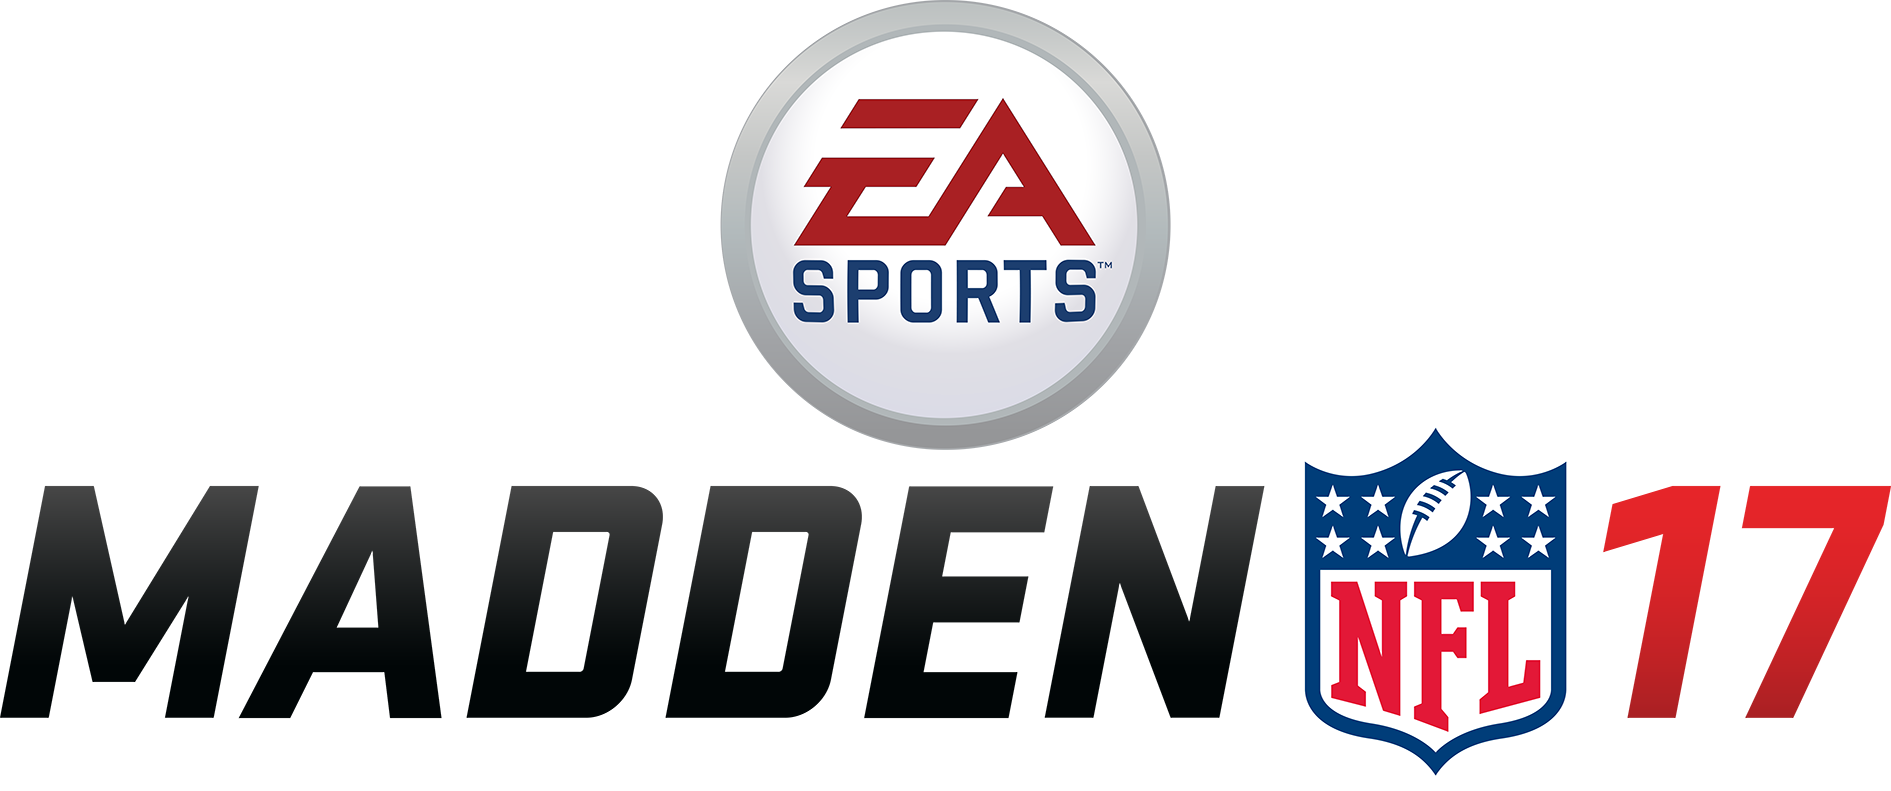 Image courtesy of EA Sports/NFL.